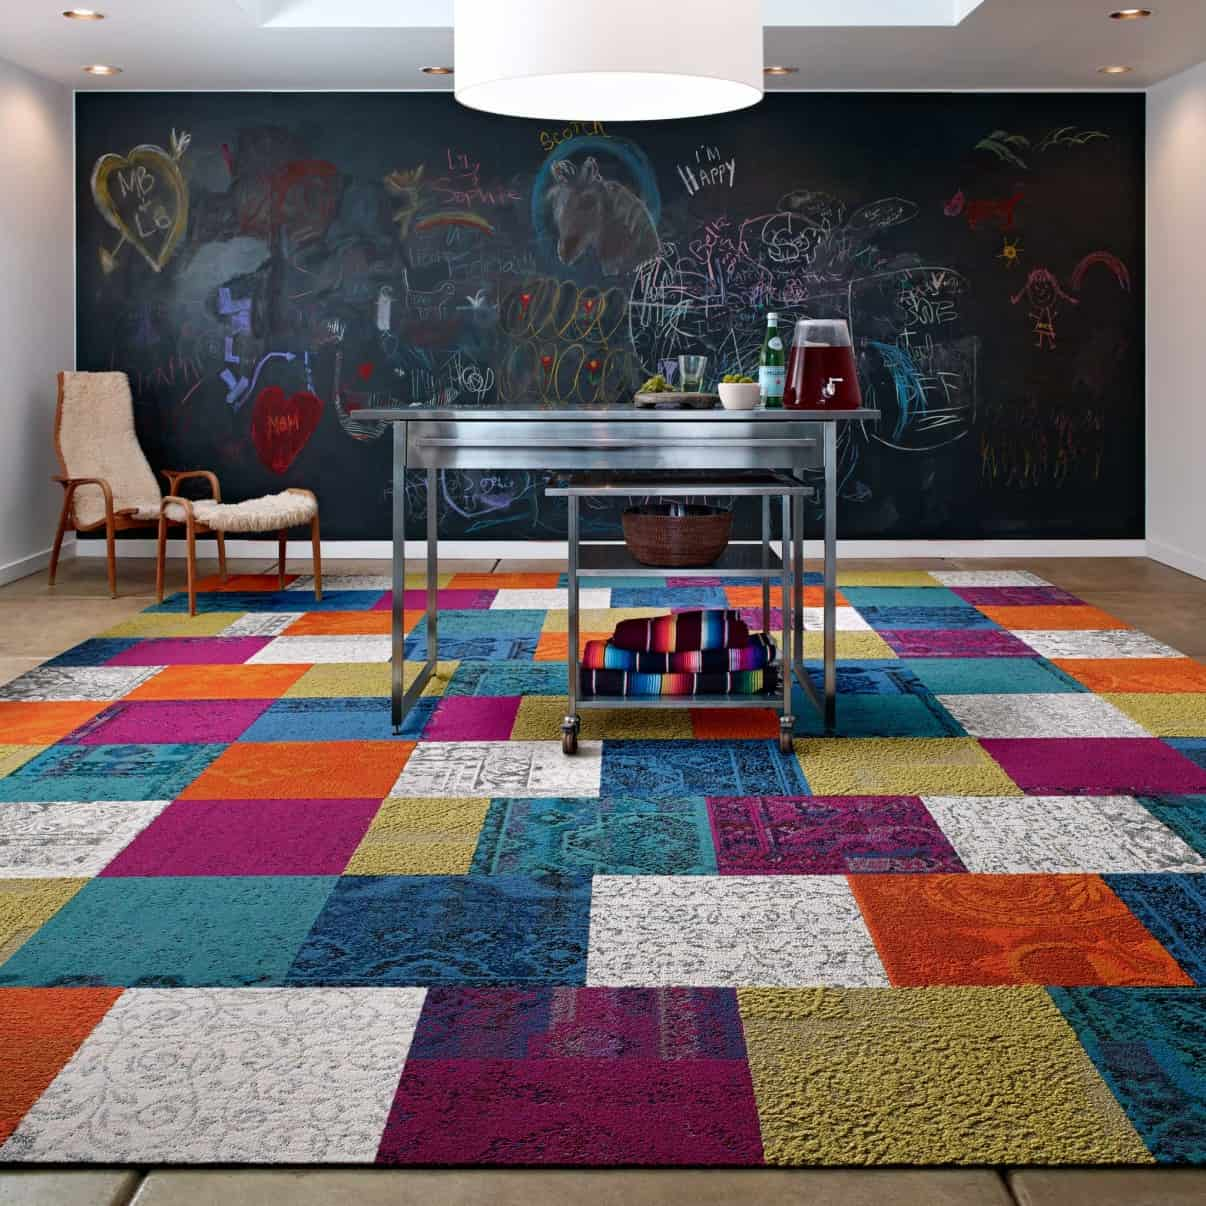 Modular Kitchens: These Patchwork Rug Squares By FLOR Bring The Room Happiness